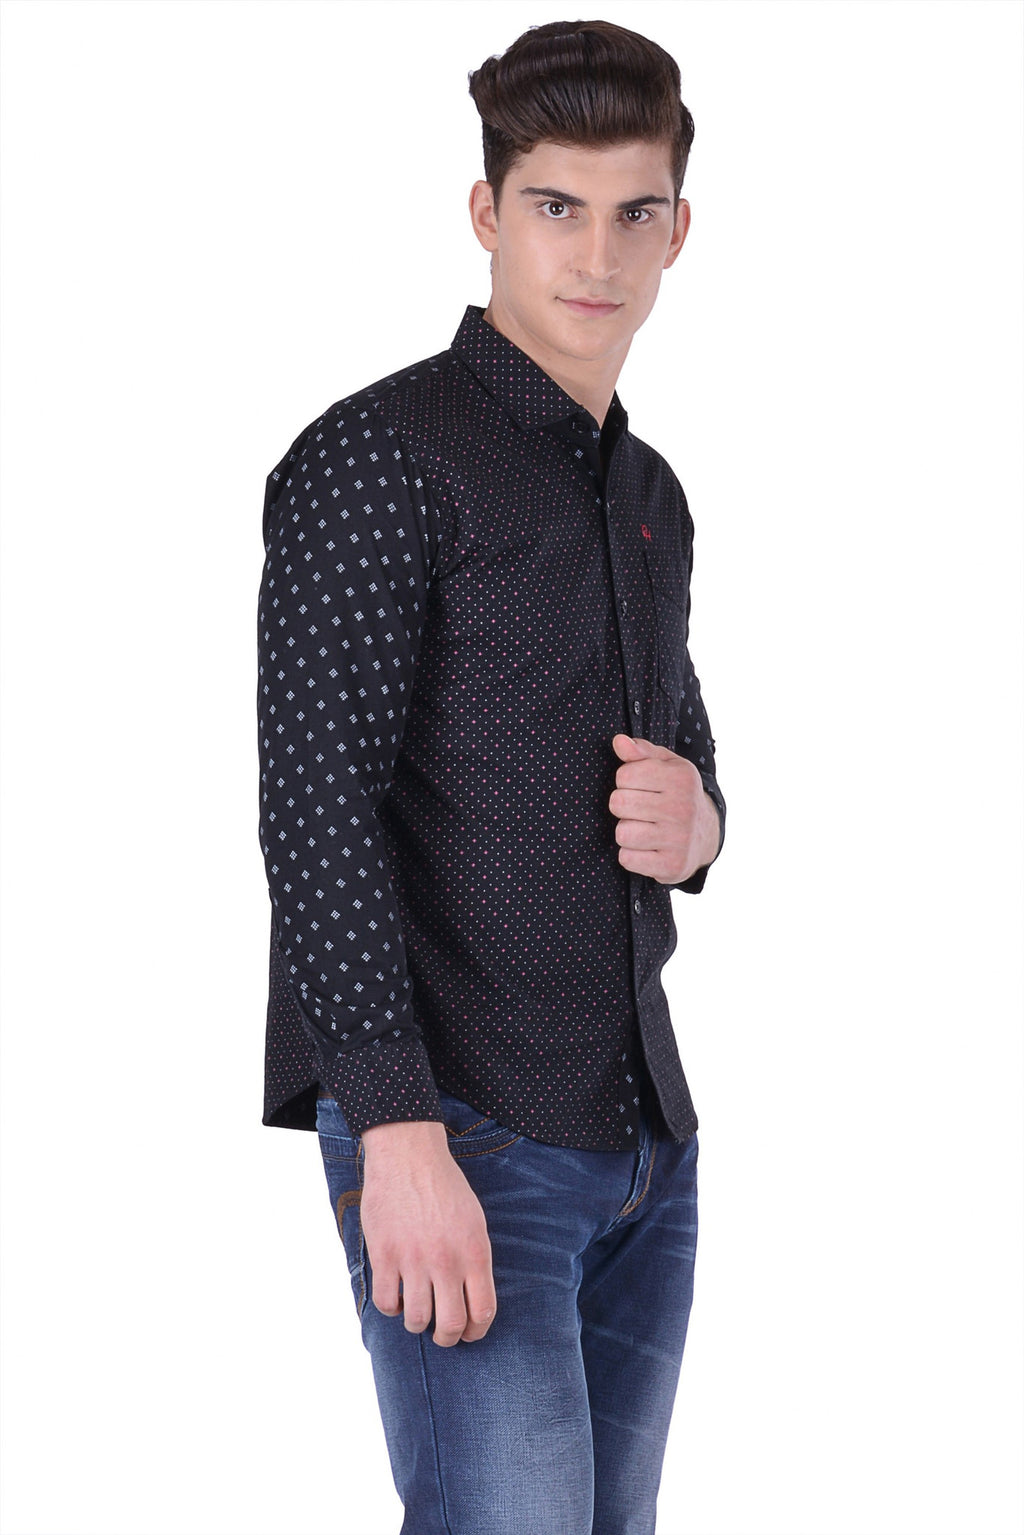 Hoffmen Men's Casual Shirt CR6083